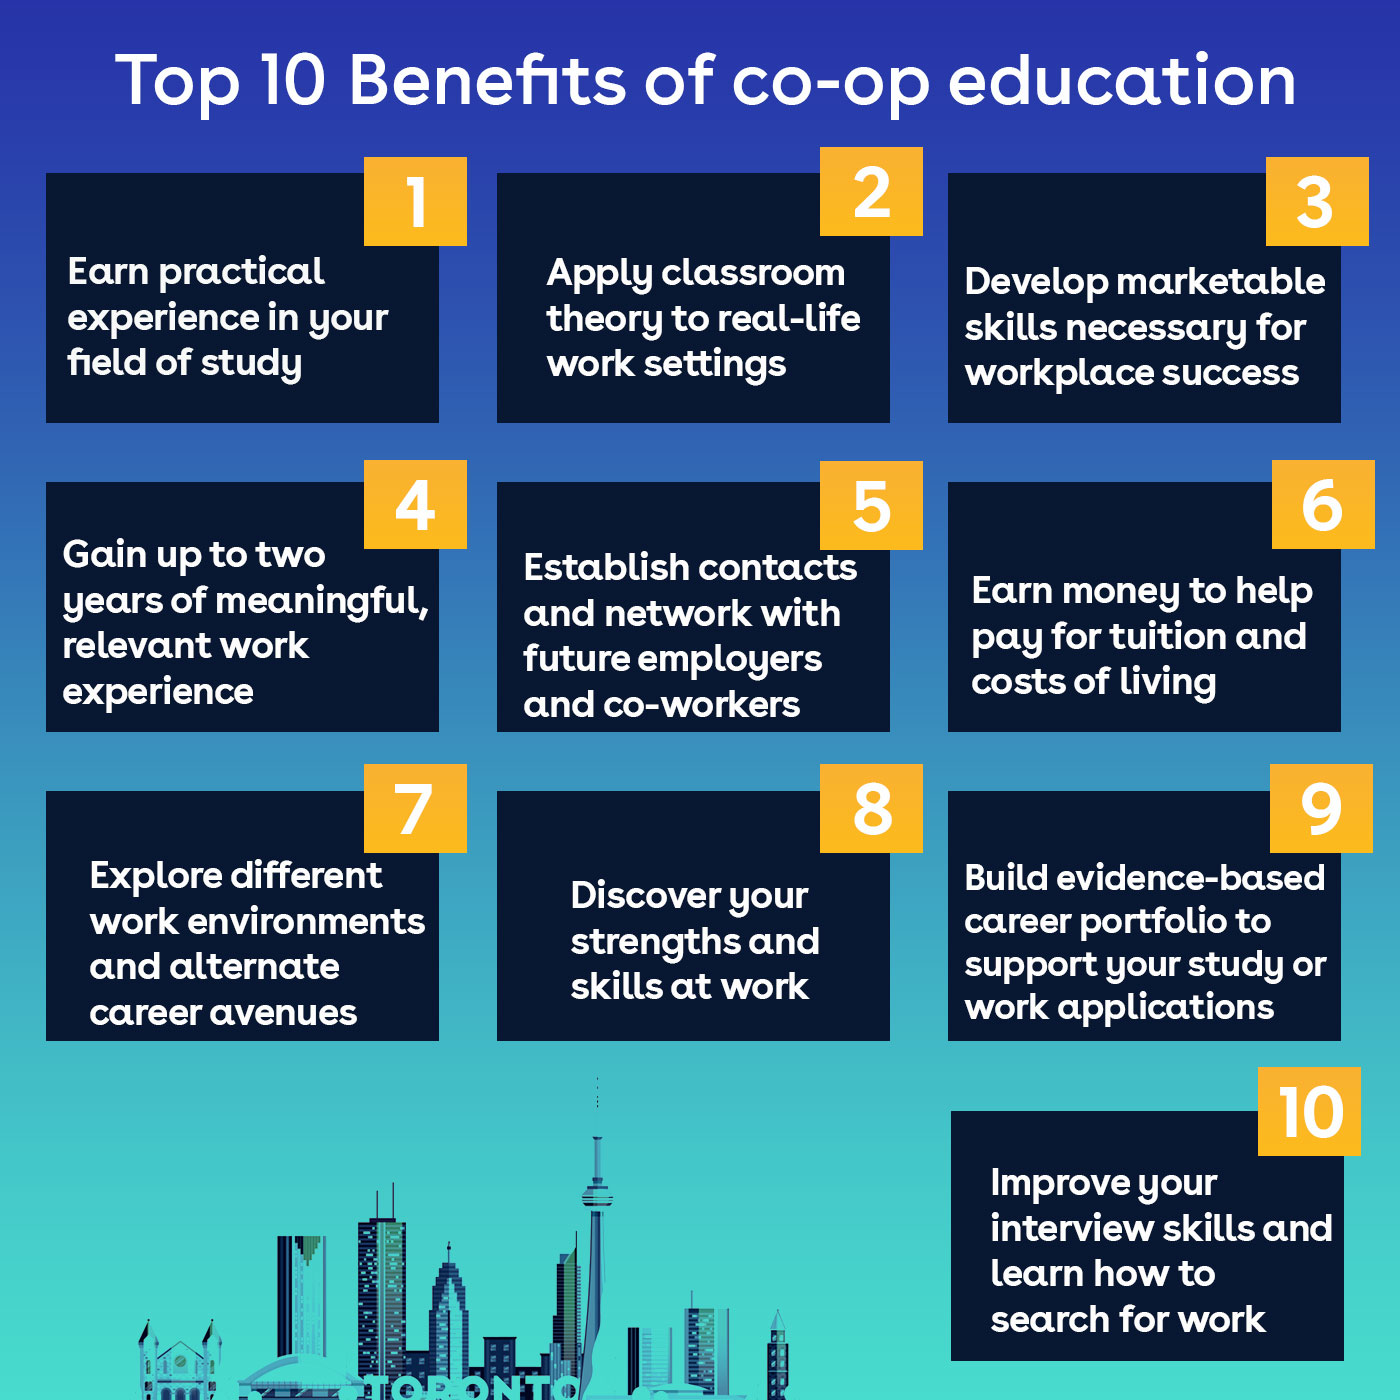 Benefits of co-op education